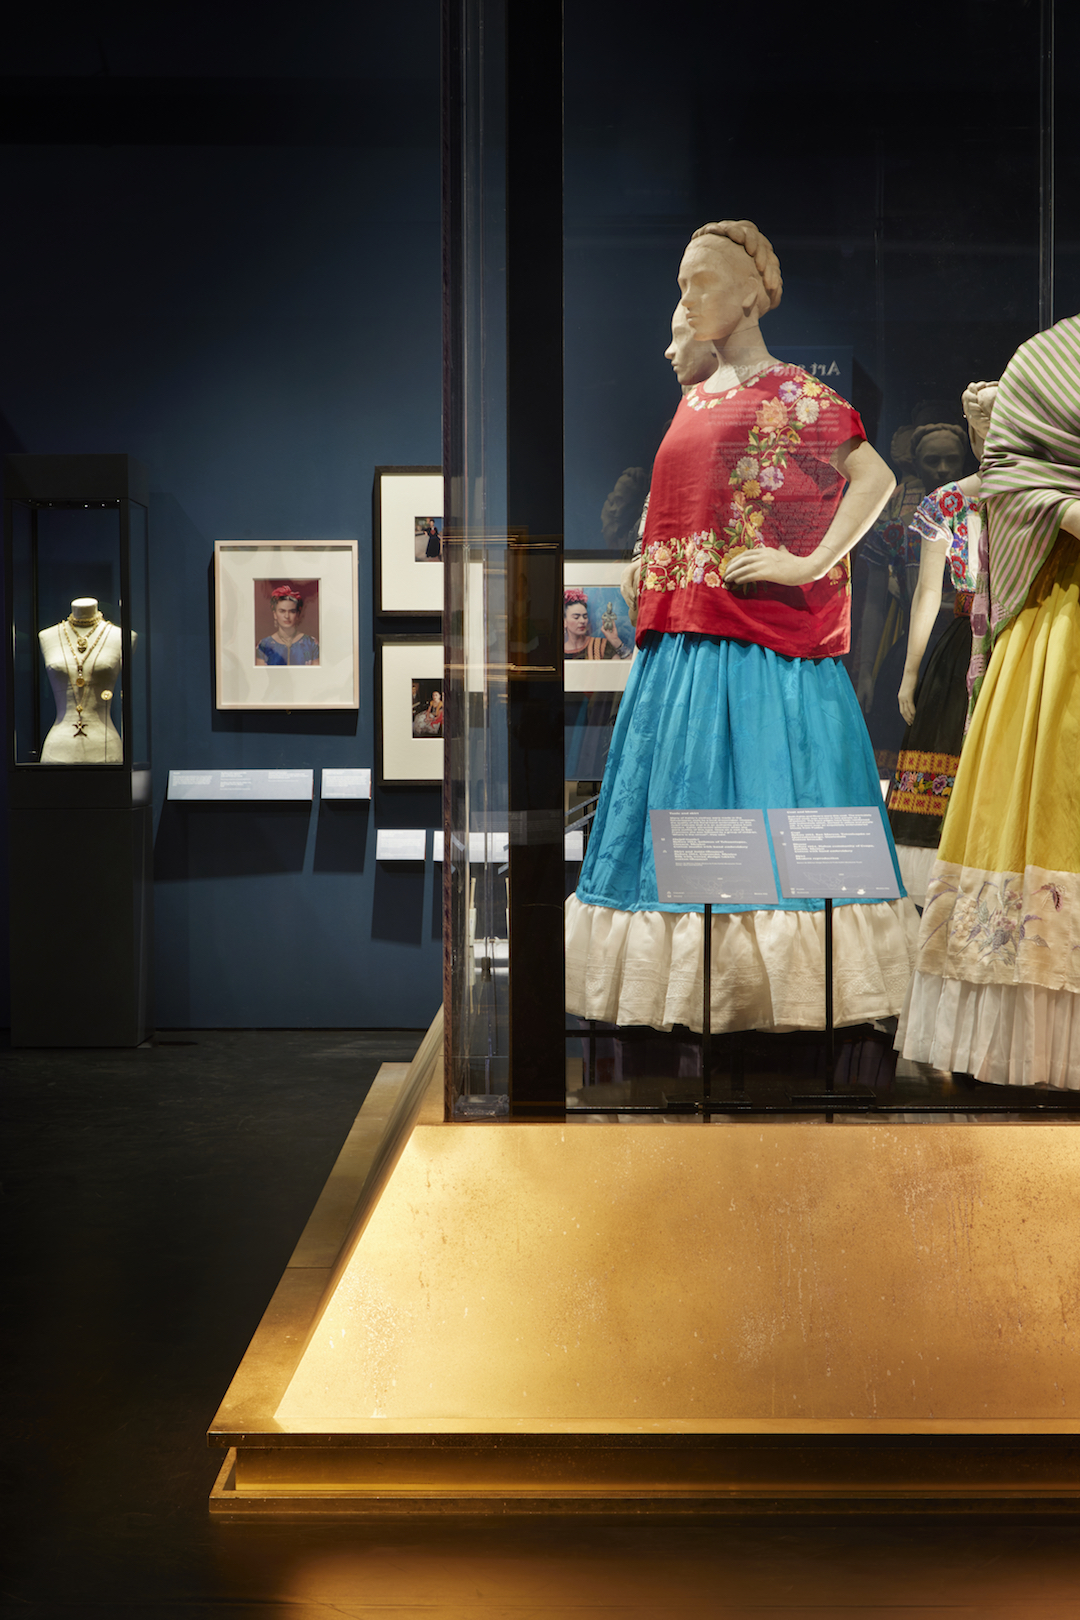 Frida Kahlo Exhibition Installation Photos Making Her Self Up